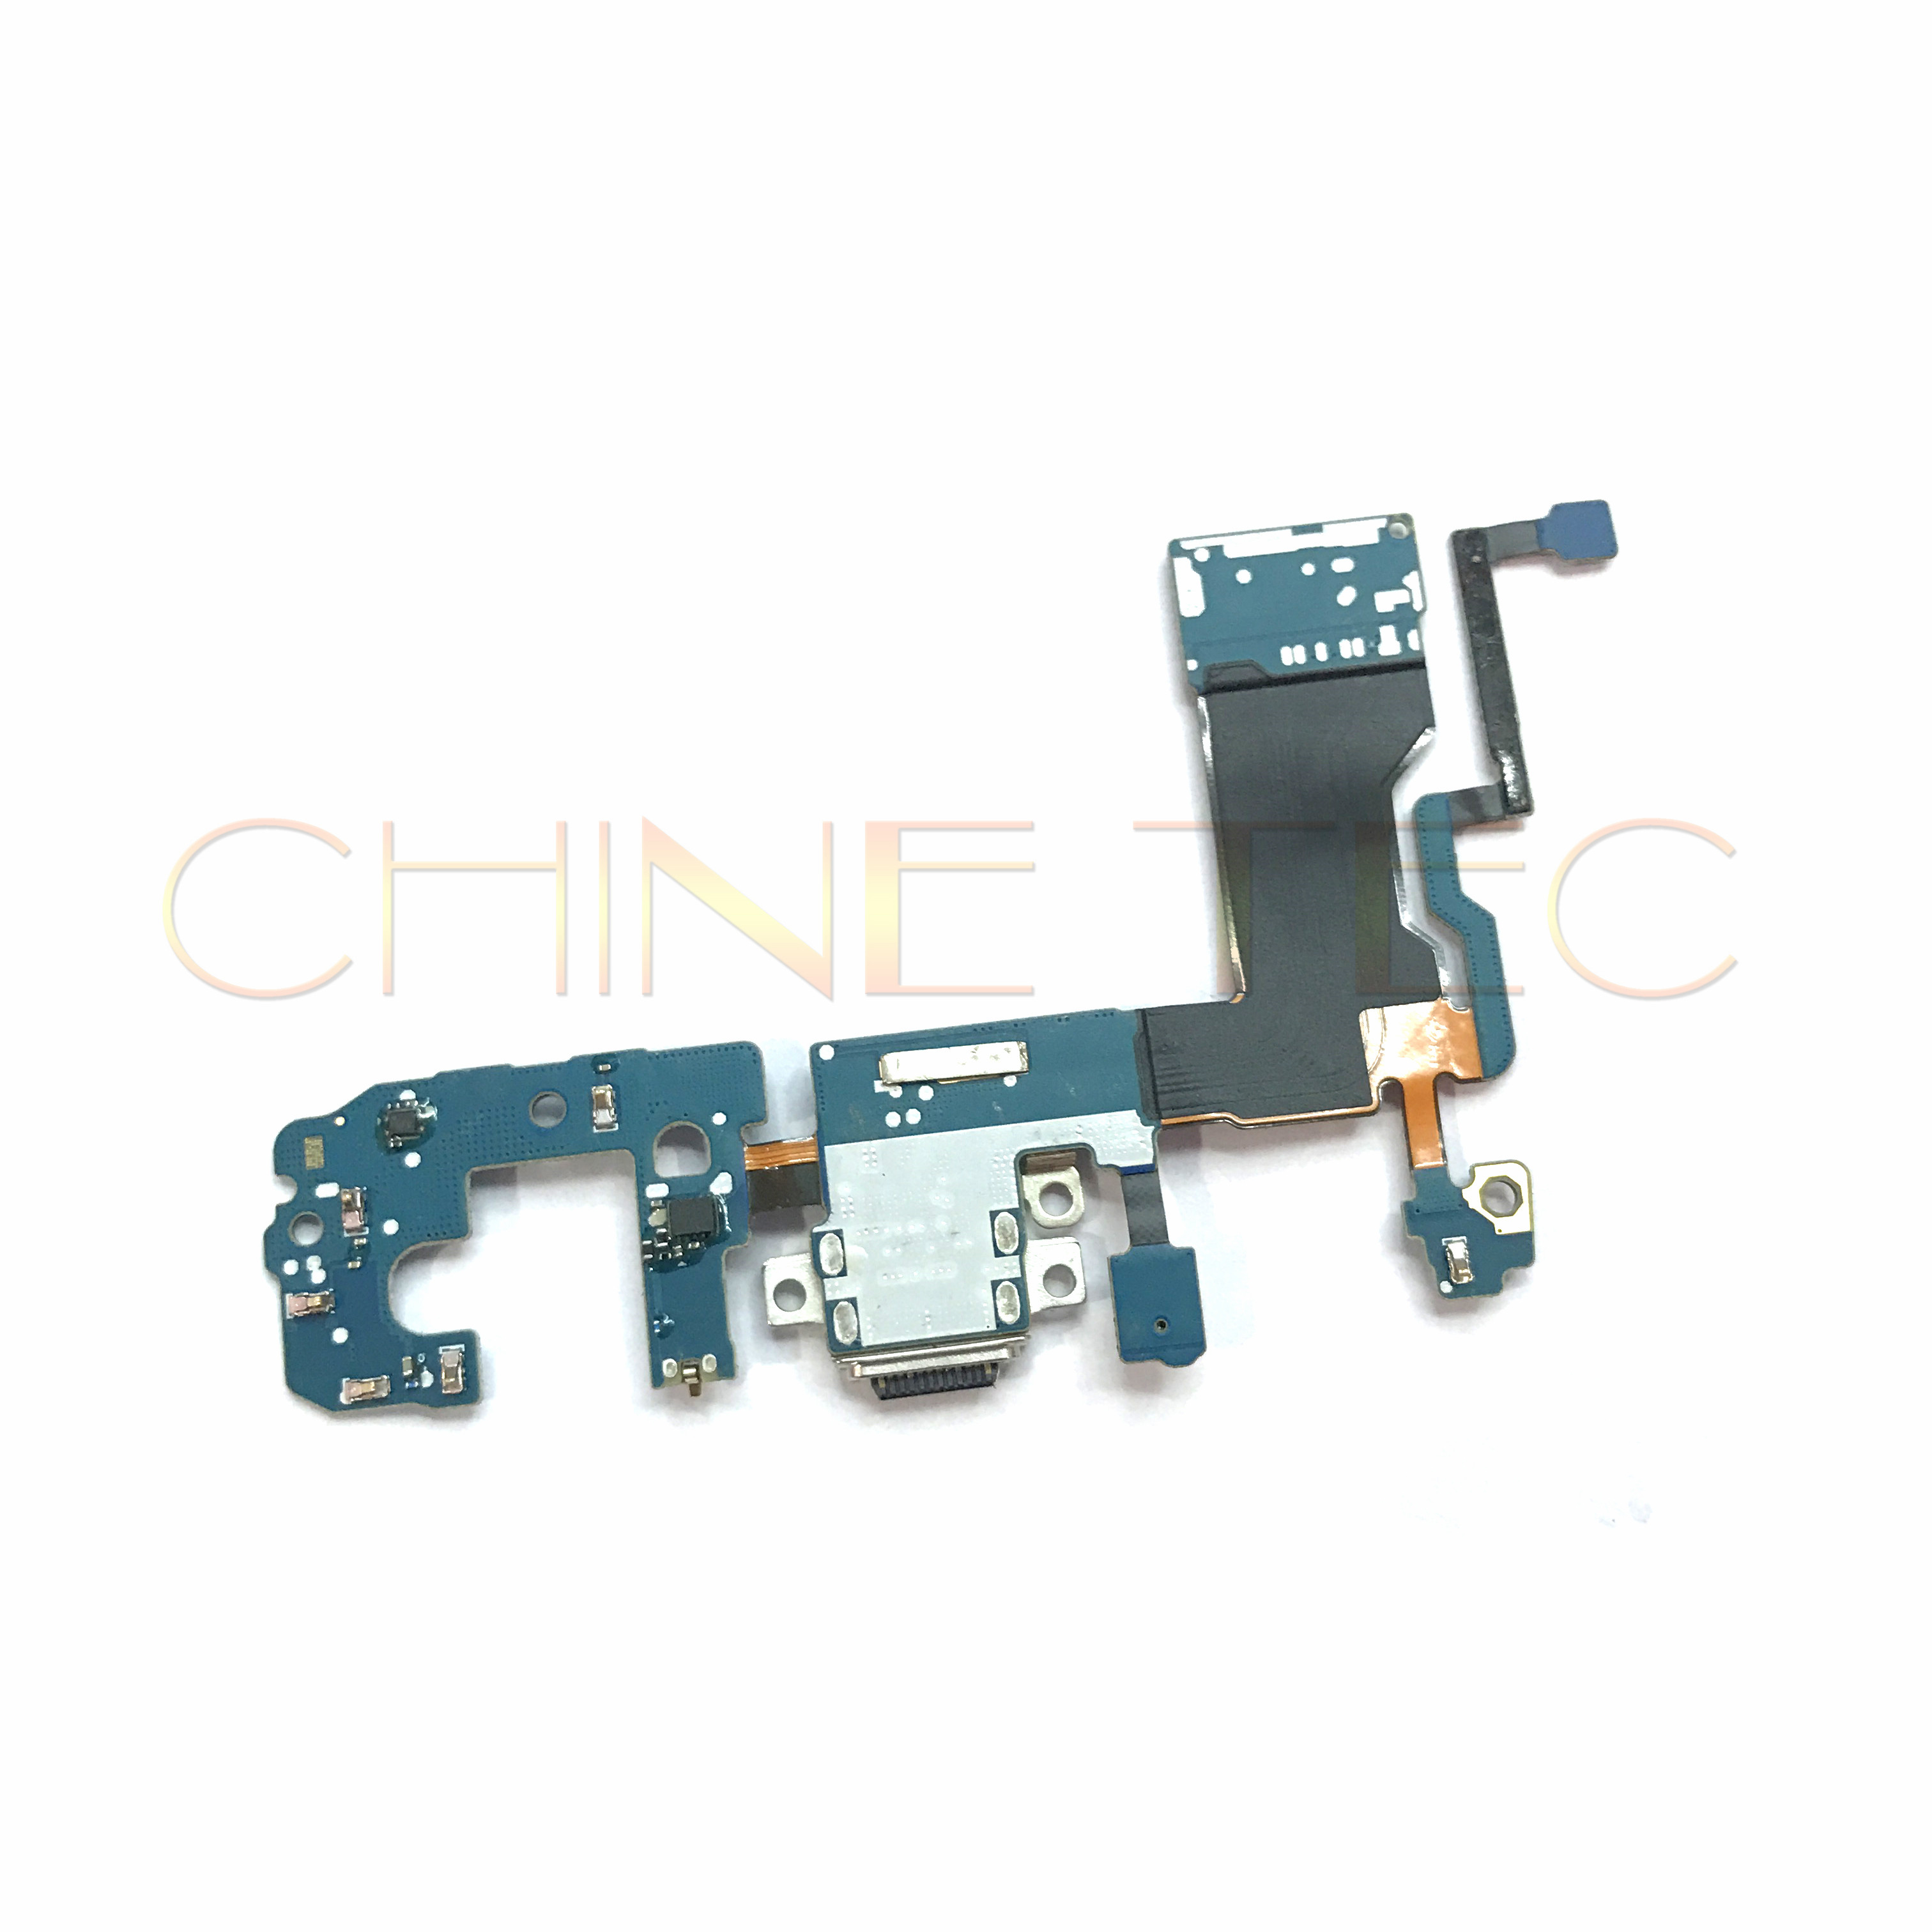 10pcs Original New Charger Dock Charging Flex Cable USB Port Connector For Samsung Galaxy S9 Plus G965F|port connector|charge flexflex cable - title=